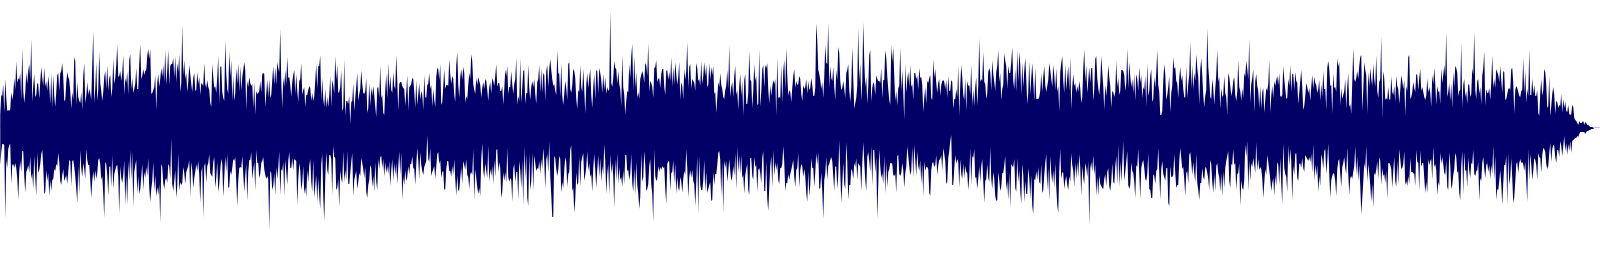 waveform of track #130985